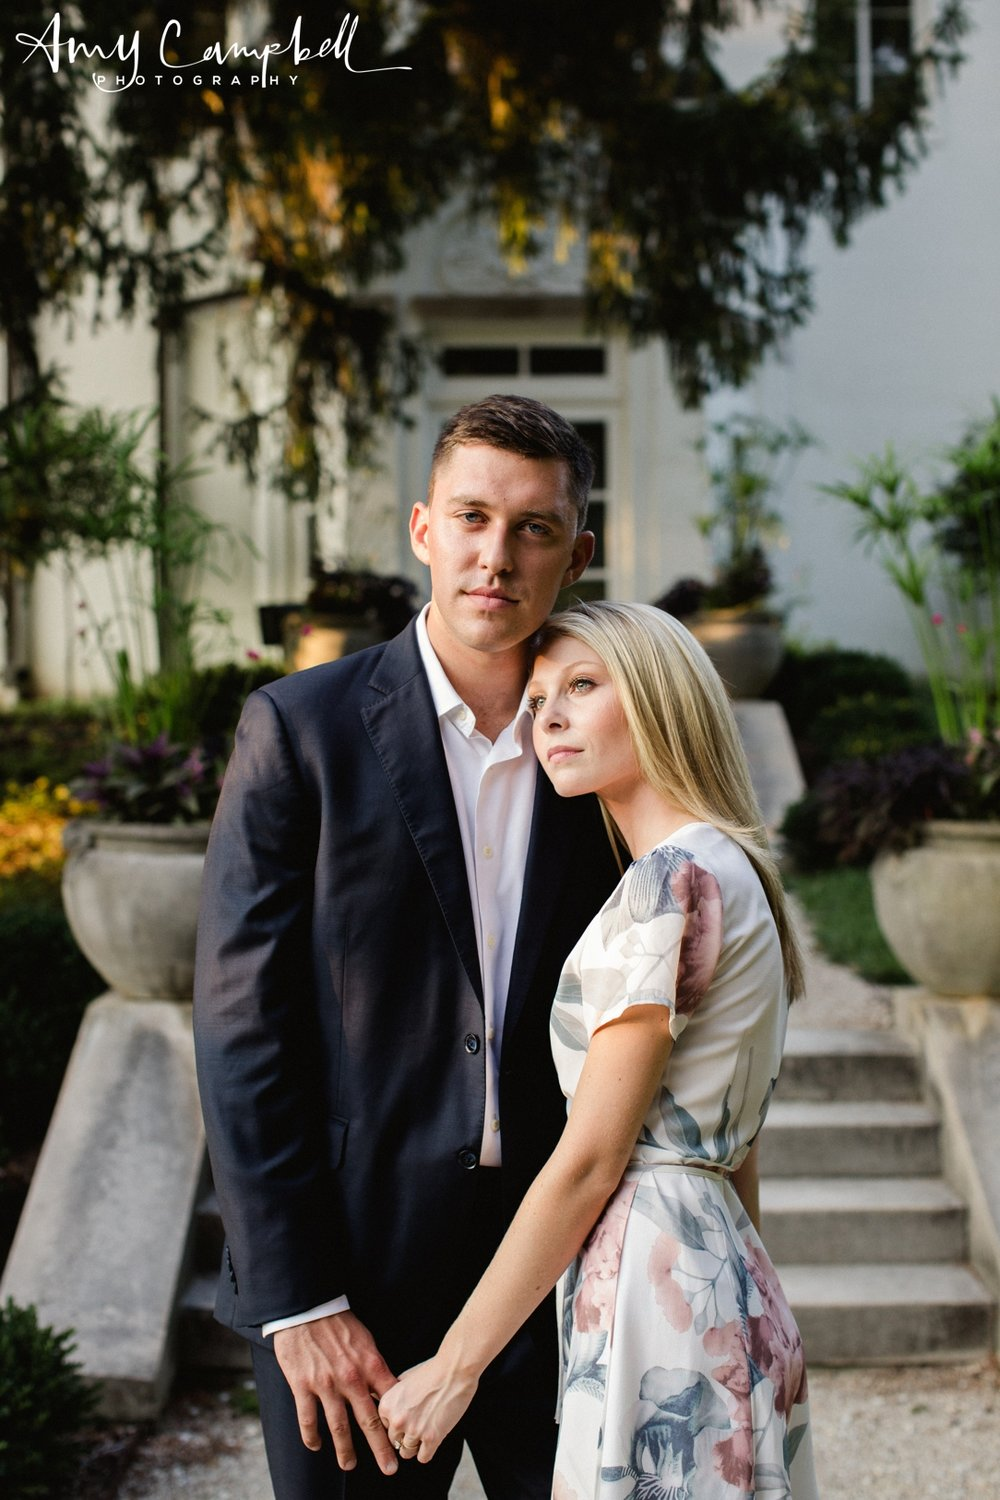 Indianapolis Engagement - Amy Campbell Photography